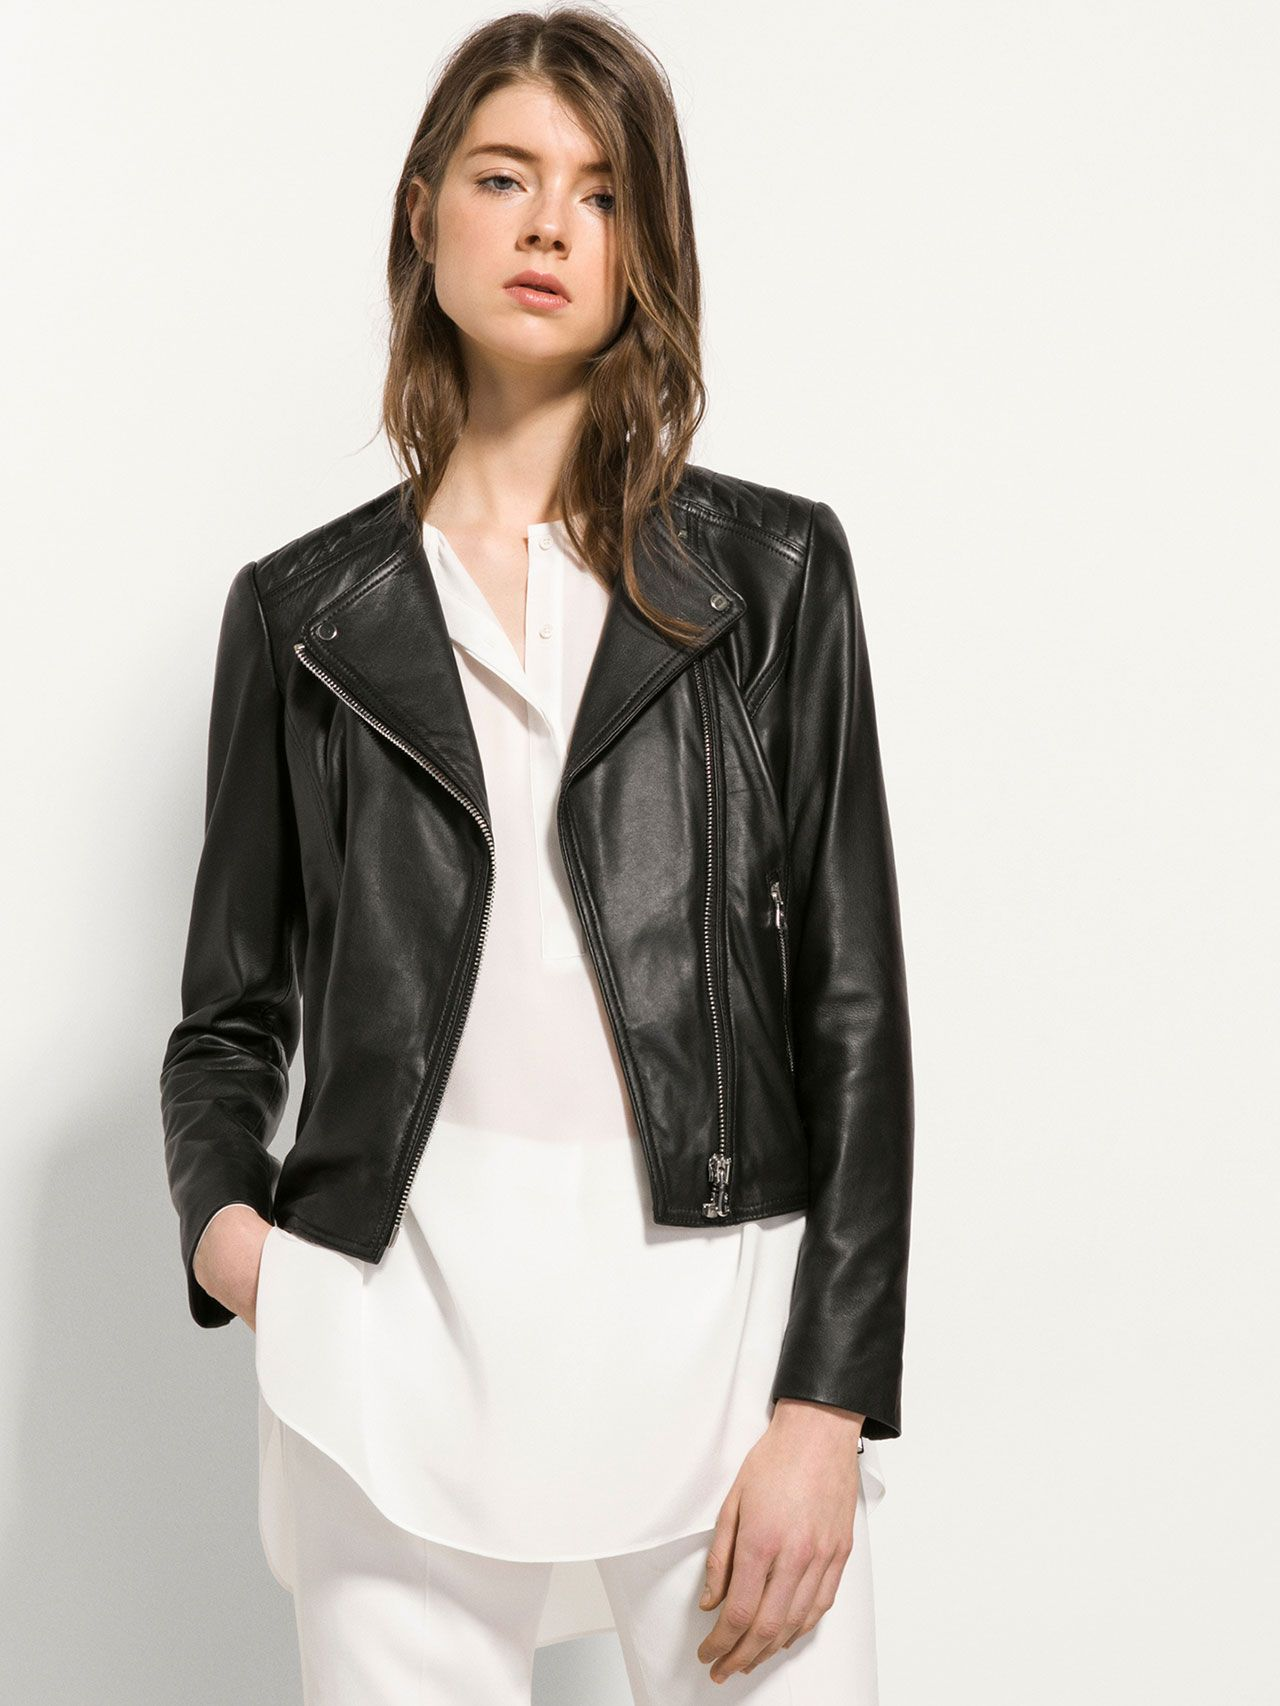 BLACK LEATHER JACKET WITHOUT COLLAR | Fall/Winter Outfits ...